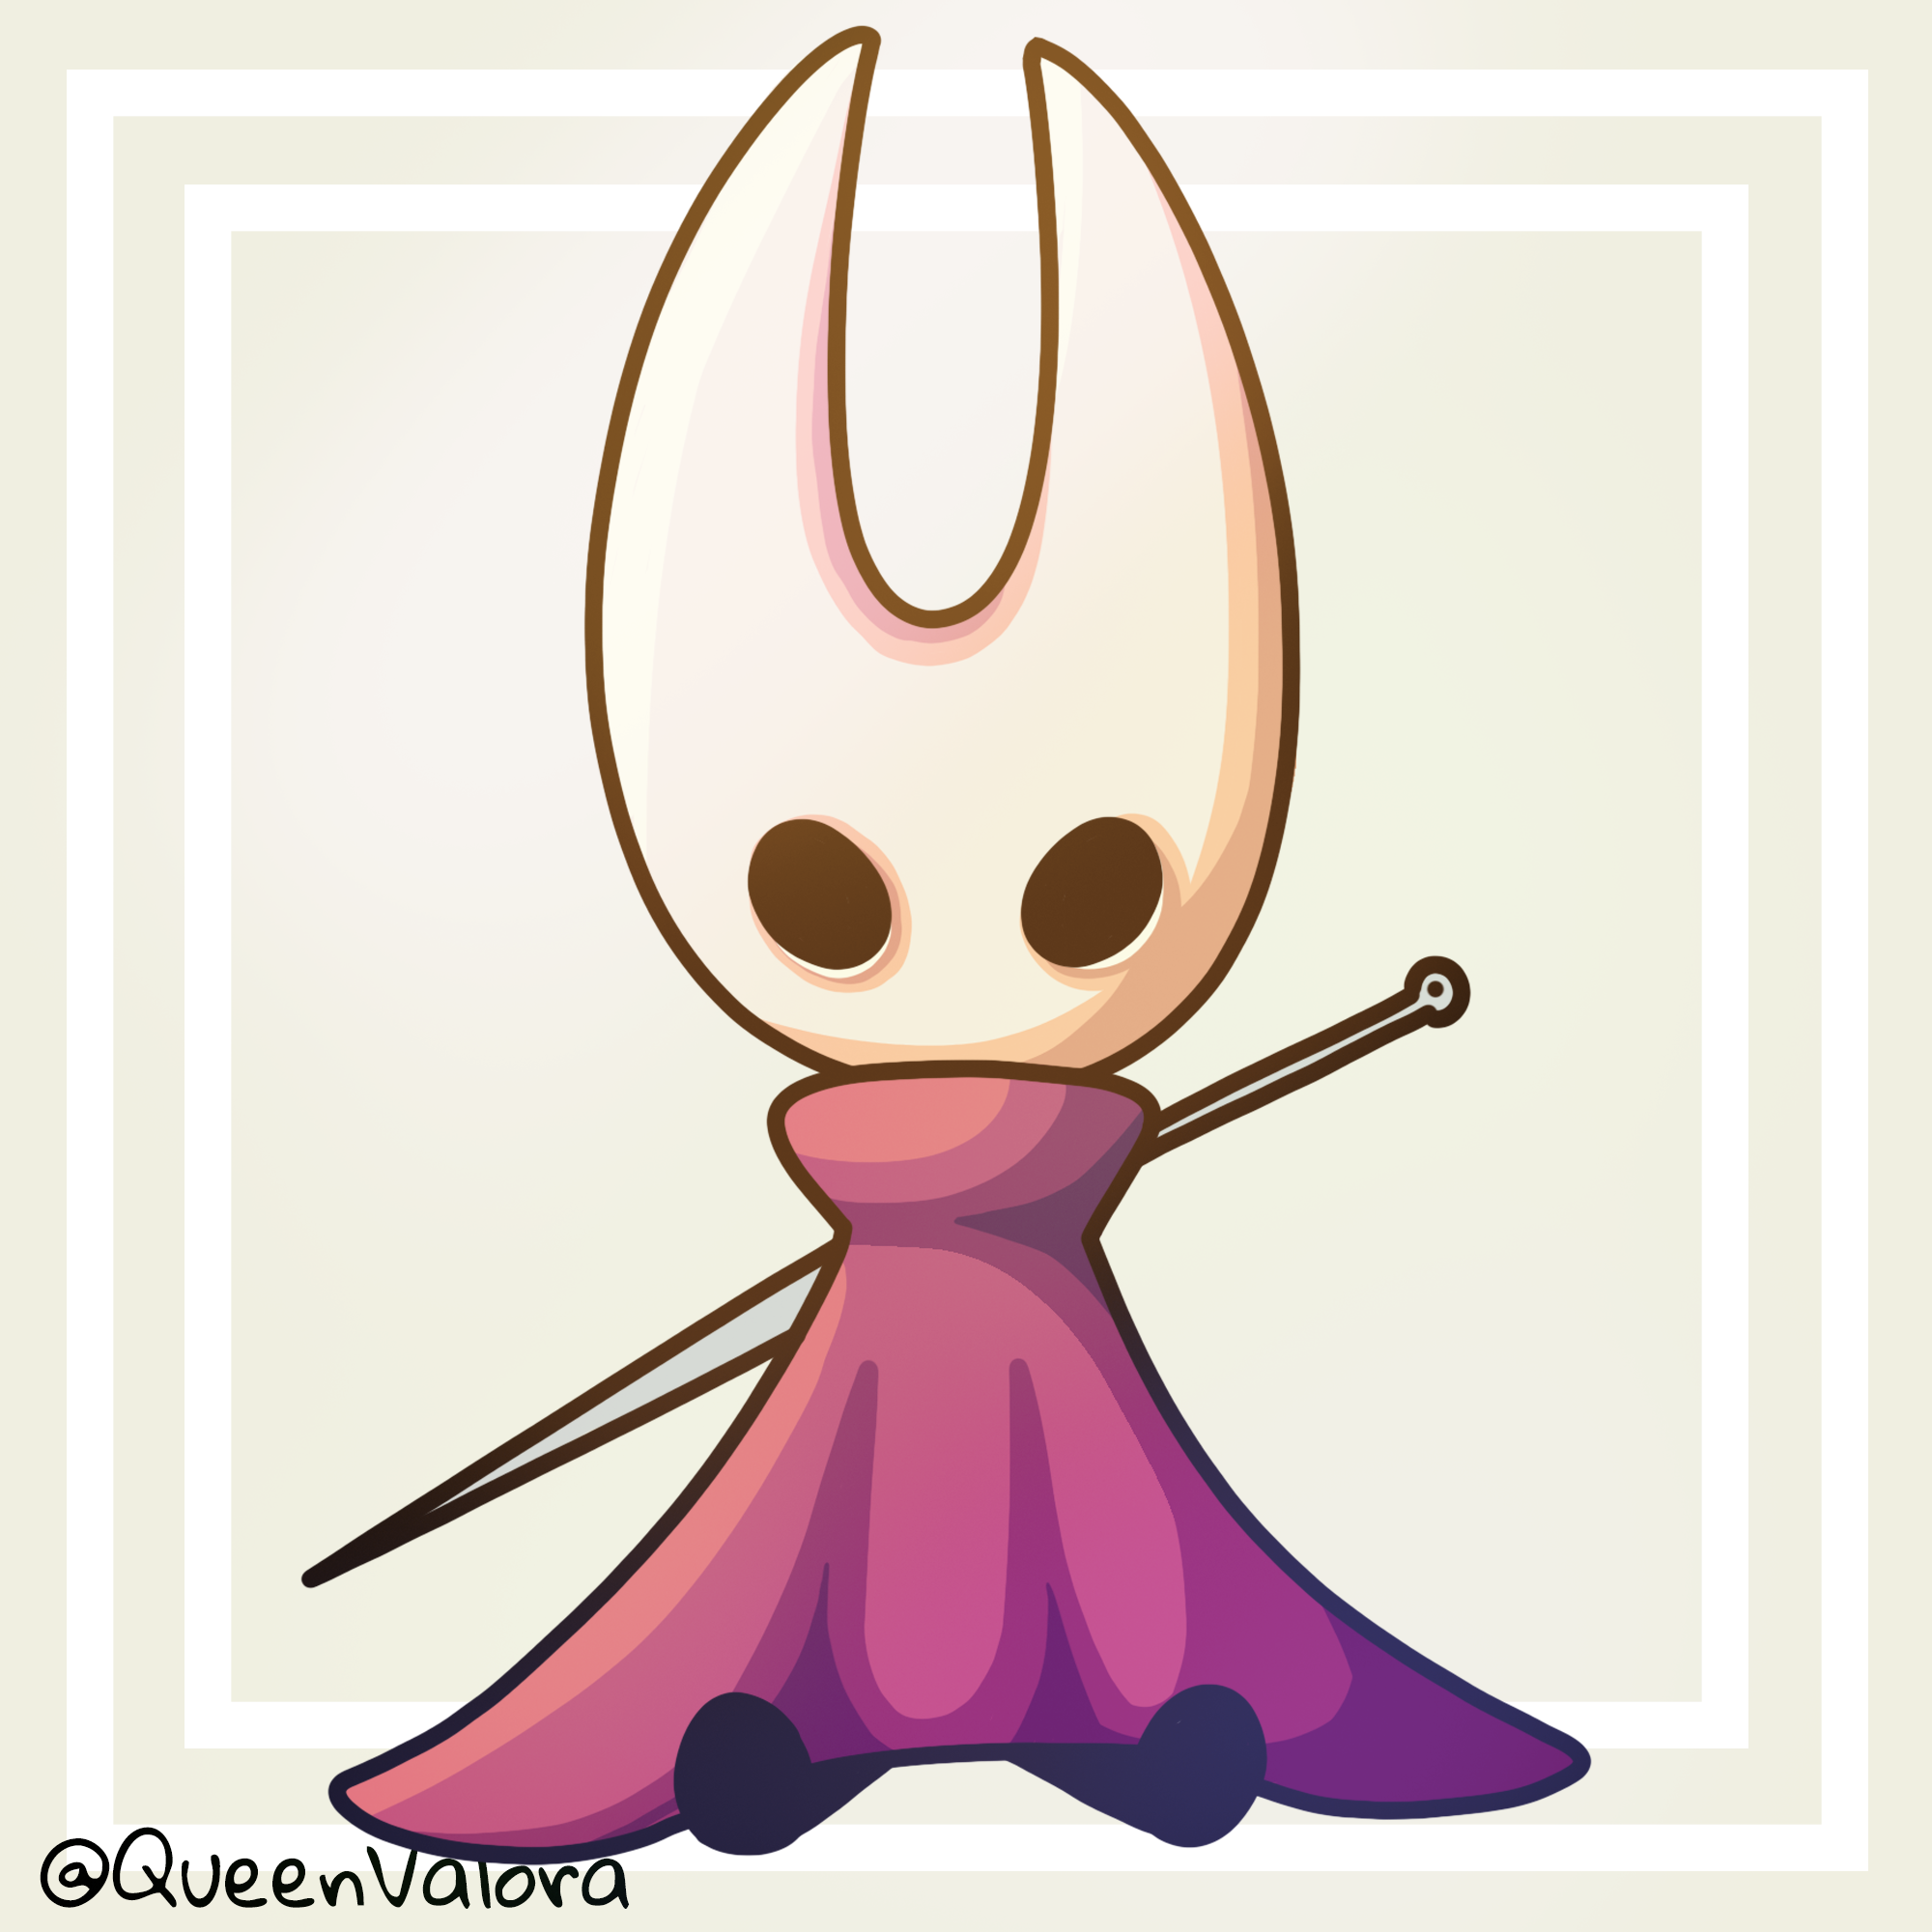 Hollow Knight Stickers For Laptop Planners And More Knight Waterproof Sticker Paper Character Design